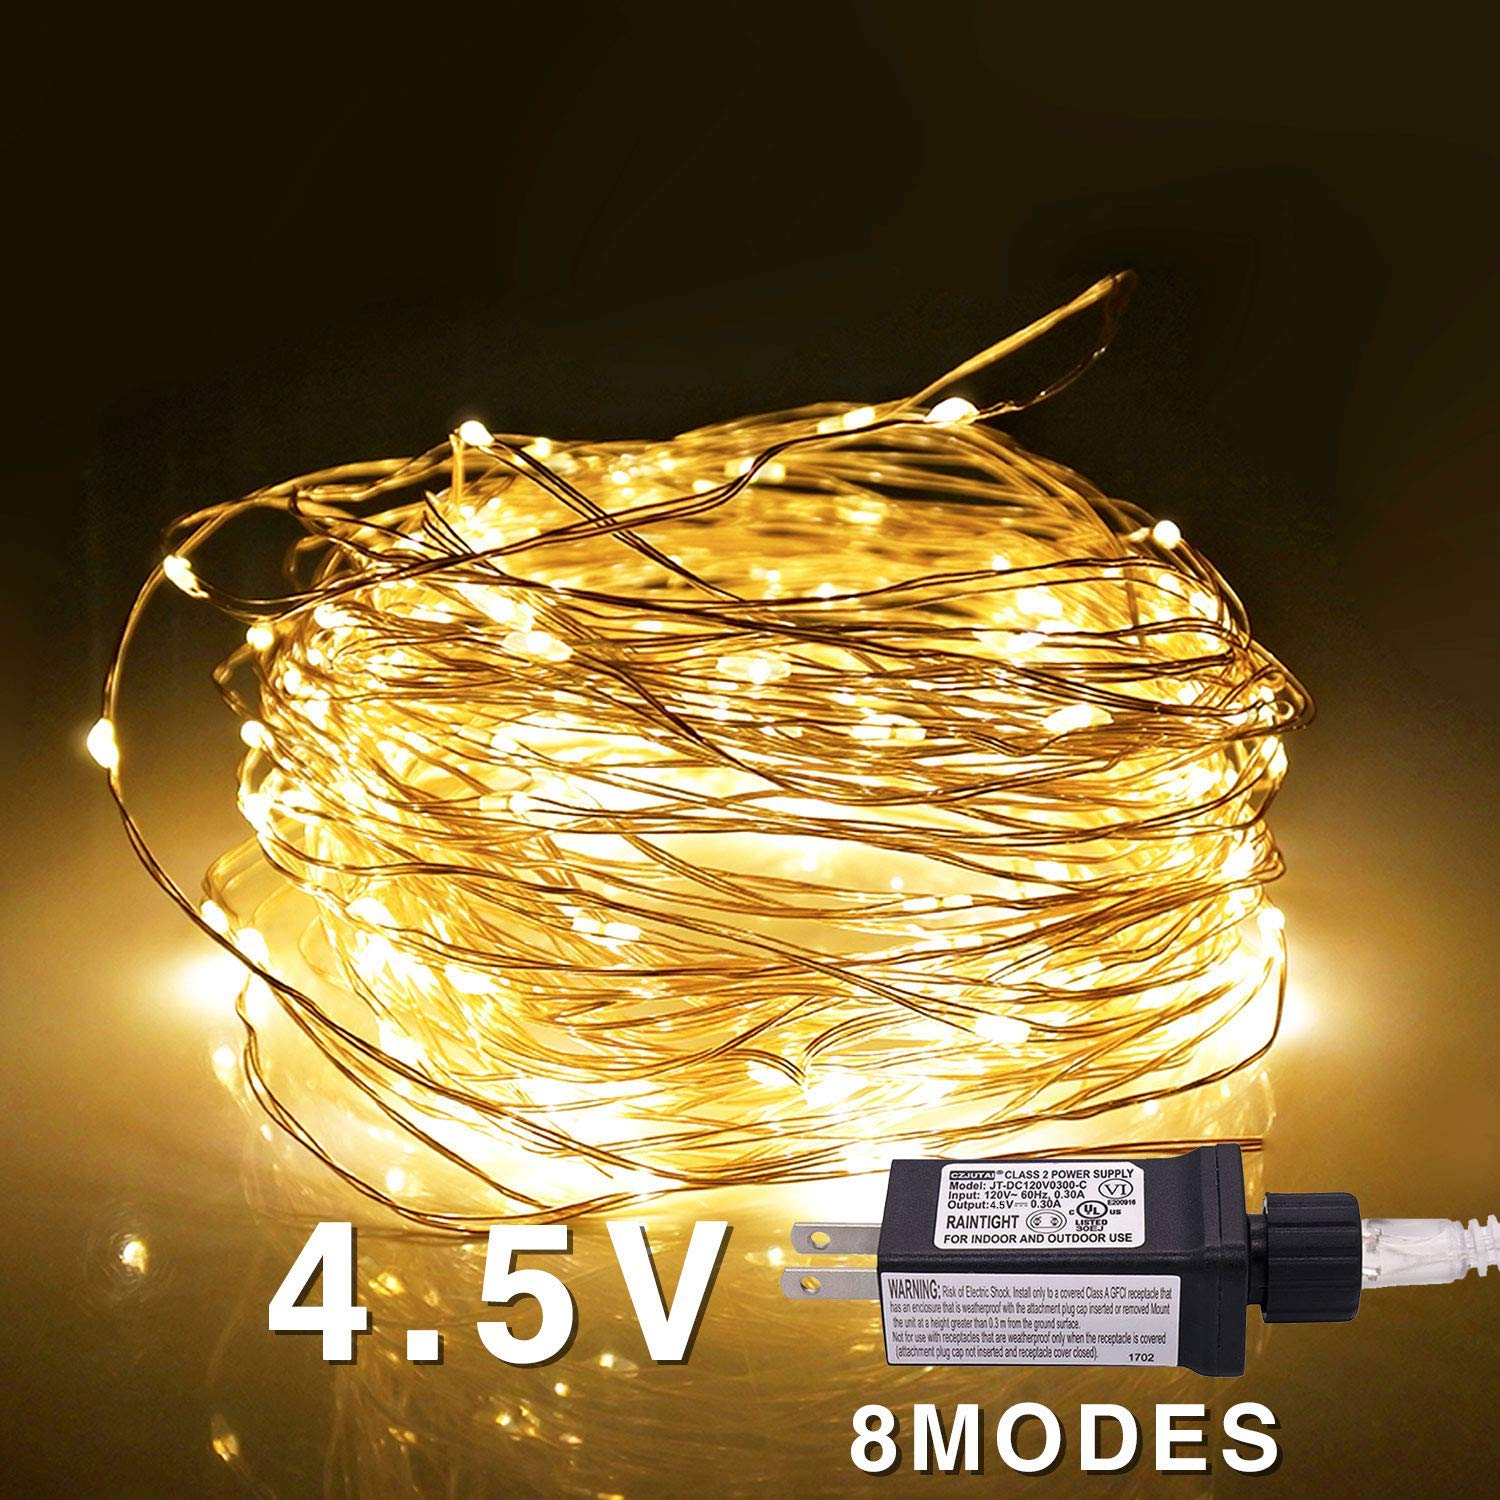 Jiamao 8 Modes 100 LED 32.8ft Plug in 4.5V Transformer Safe Voltage Waterproof Fairy String Copper Wire Lights for Christmas, Bedroom, Patio, Wedding, Party, Warm White (100LED)